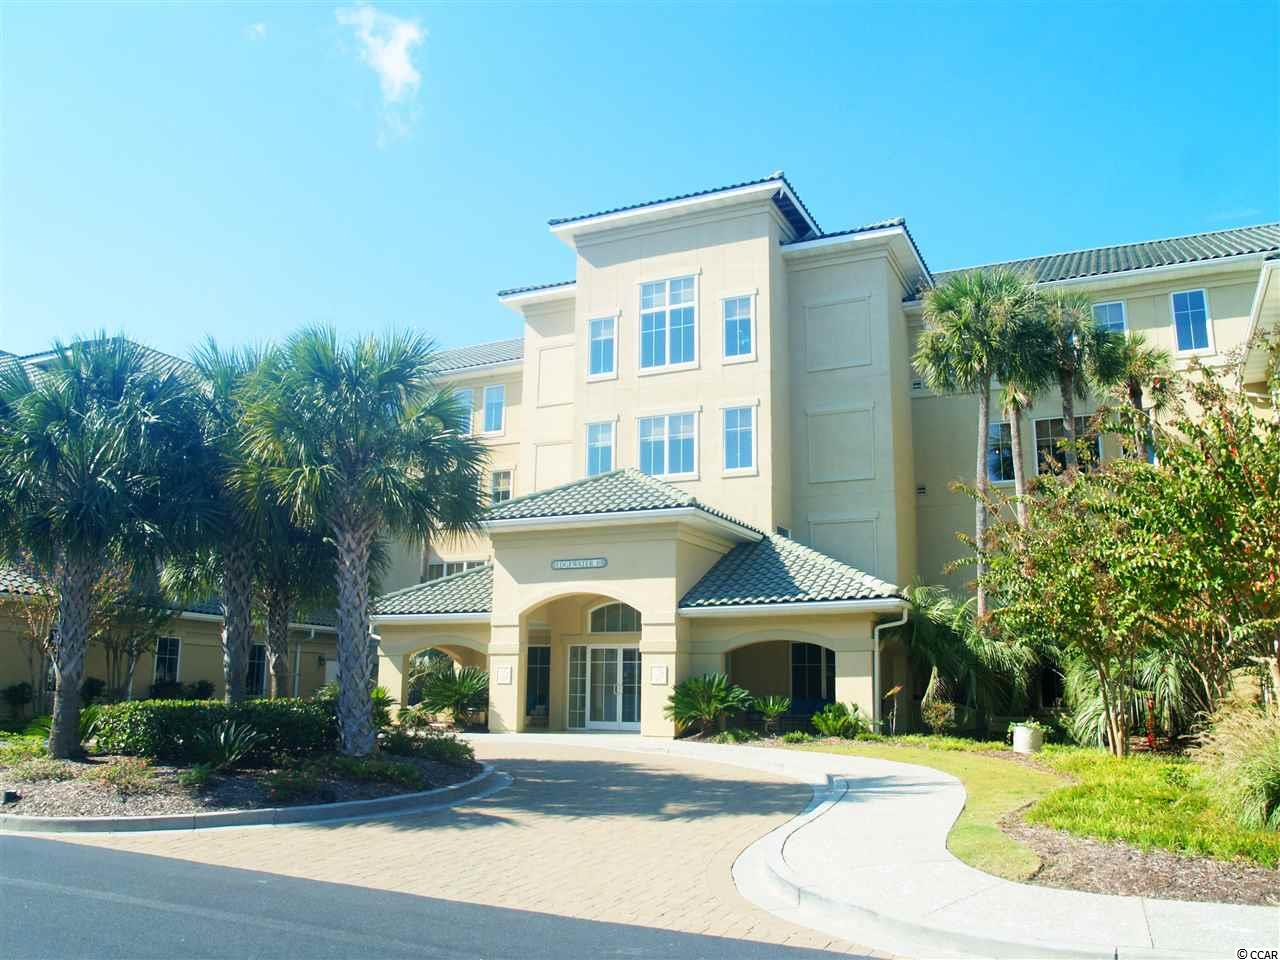 Enjoy Resort style living on the ICW in Edgewater. Well maintained 2 bedroom, 2 bath condo with Direct ICW views ~ Edgewater amenities include ~ gated entry, clubhouse, fitness room, day docks, garage parking, storage and a pool on the waterway. Motivated seller - will consider all reasonable offers.